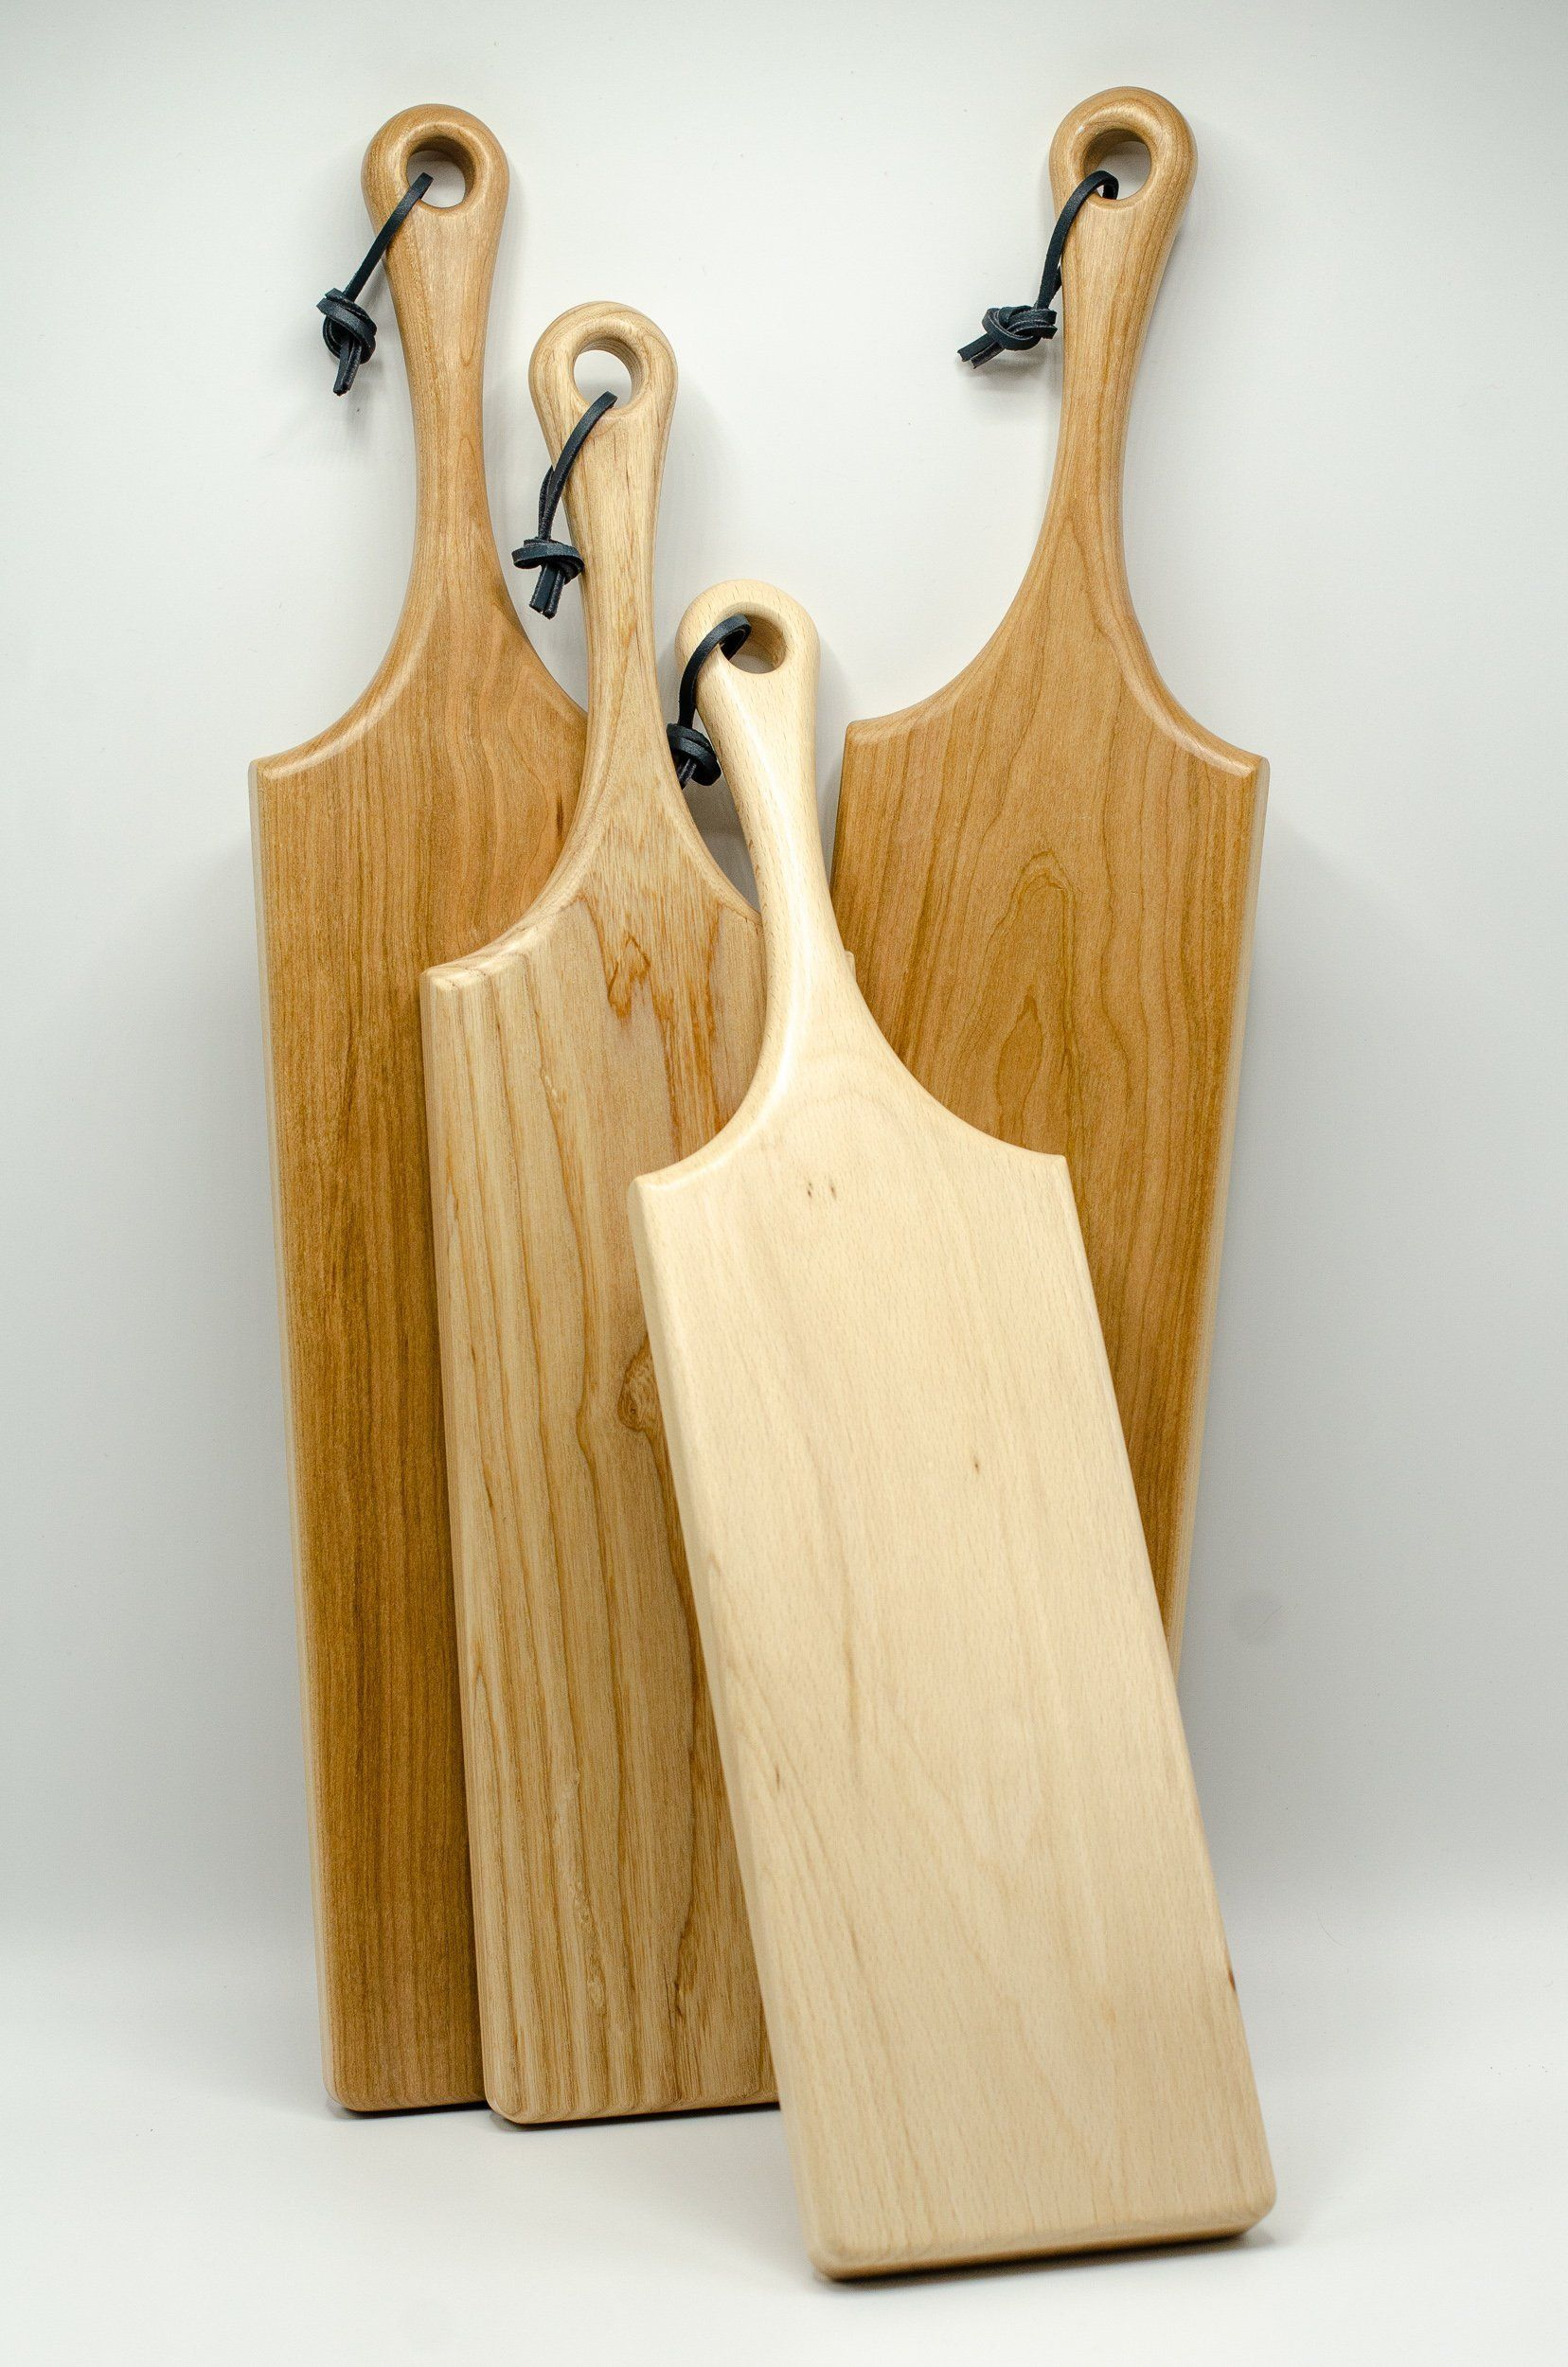 Wooden Cutting Board, Wooden Chopping Board, Charcuterie Board, Wood Serving Board, handmade in London, perfect gift for foodies is part of Wooden Home Accessories Cutting Boards - Elegantly carved solid wood serving boards with a multitude of uses   Each board features an ergonomic curved handle to make carrying it a pleasure  The boards are all designed, produced and handfinished by me in my small workshop in the heart of London   Each board is unique due to the size and grain pattern   Current stock features cherry, ash and beech, and each is finished with a navy leather loop for hanging    All boards are finished with my own recipe foodsafe conditioning wax, which will nourish and protect your board  Perfect as an anniversary or Christmas present   Feel free to express a preference if you like a particular board and I will accommodate where I can  Uses Cheese board Chopping board Serving platter Display board Cake board Dimensions Width 18cm Thickness 2cm Length 58cm (cherry), 53cm (ash), 51cm ( beech) Hardwood is a natural product, and as such there will be variations in colouring, grain patterns and markings   This makes each board unique and is part of the charm of owning handcrafted solid wood furniture and accessories